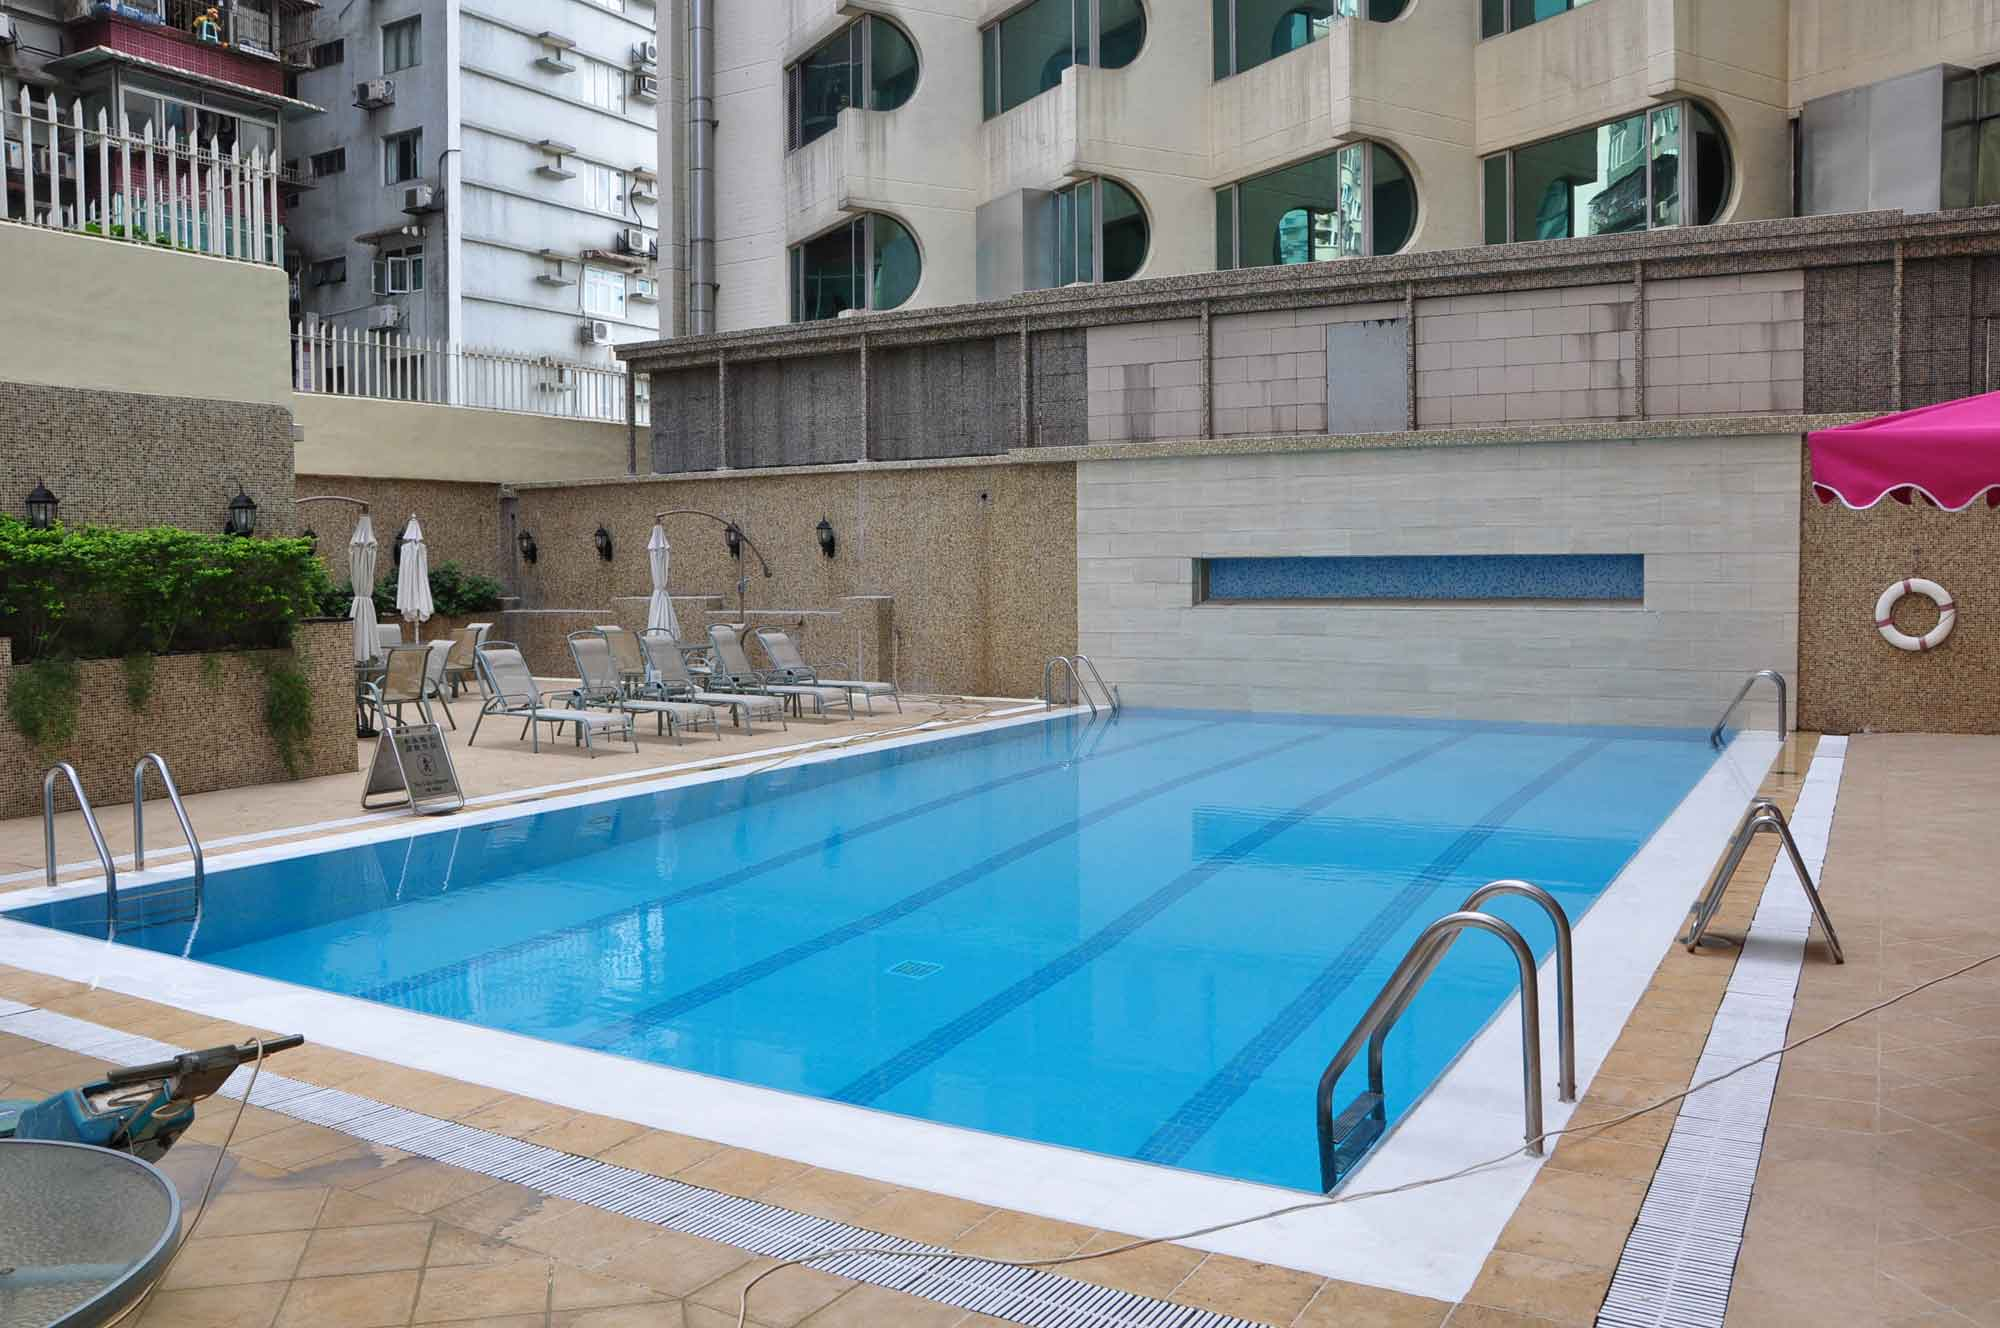 Grandview Hotel Macau outdoor pool